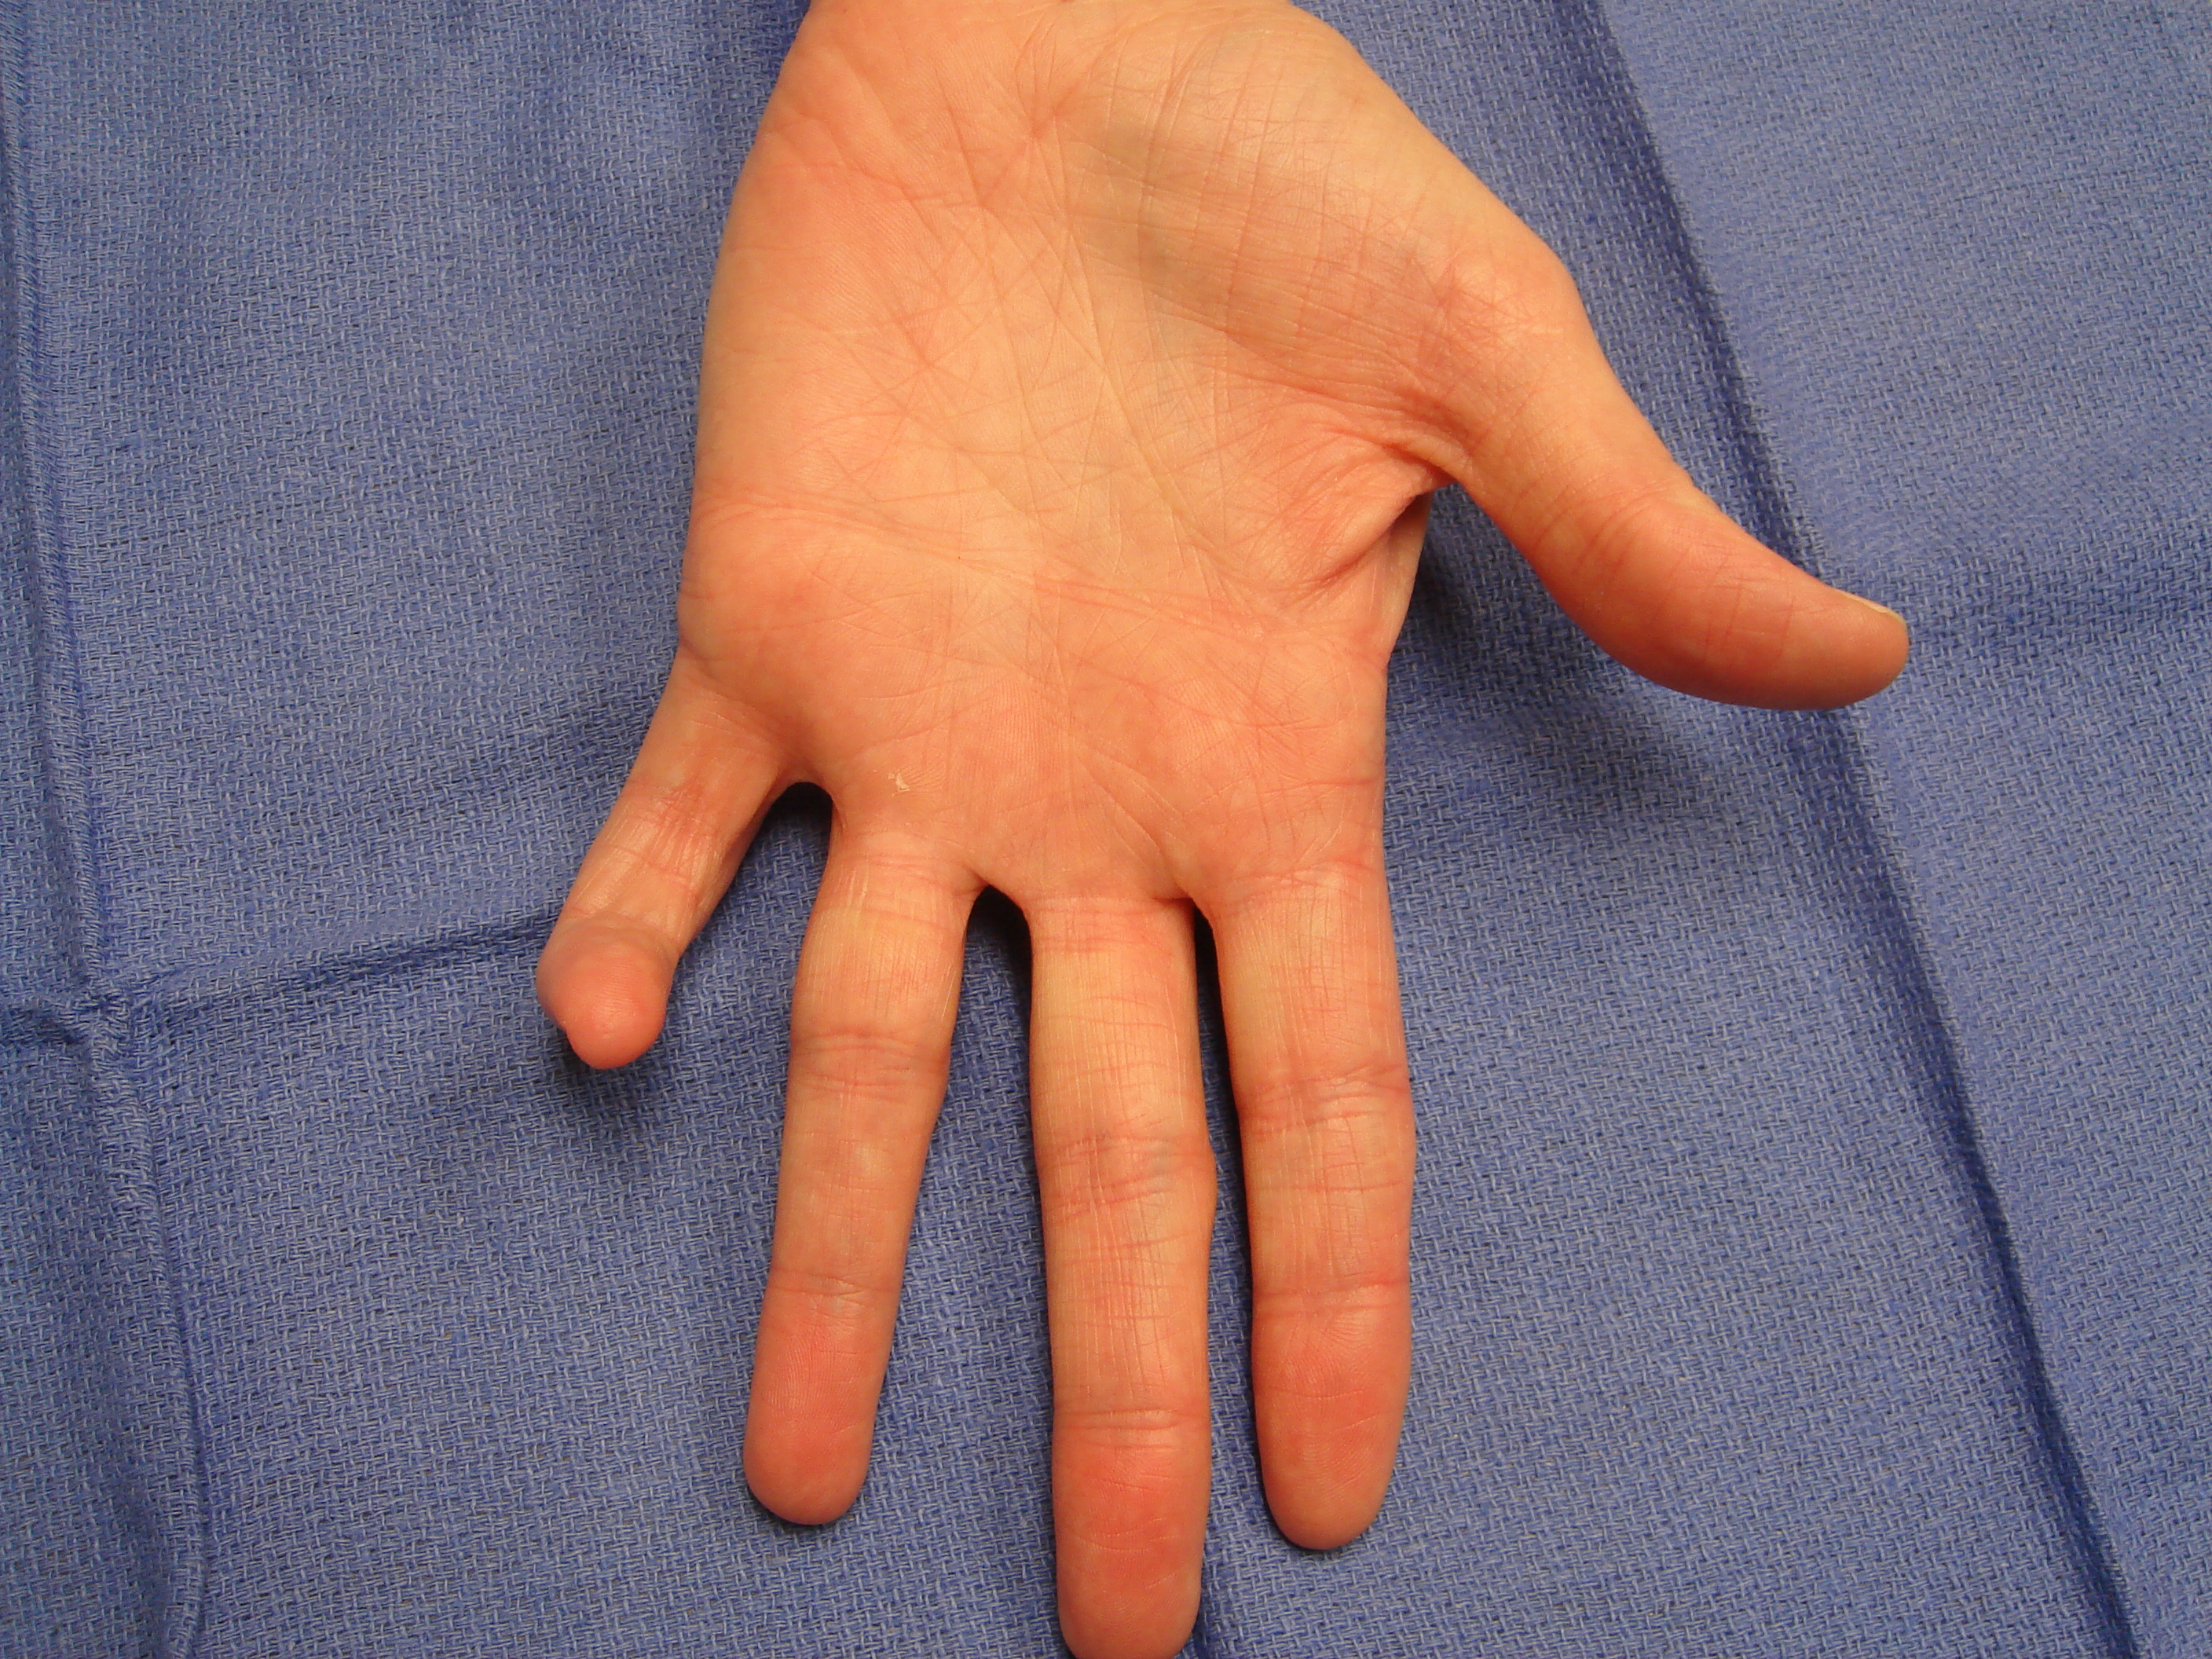 "Figure 8b: These images show a woman in her mid-50s with a significant, little-finger, combined (contiguous cord) PIP and DIP contracture. The MP joint was not affected. The injection and manipulation videos depict custom adaptation of the ""safe technique"" for such an unusual cases."